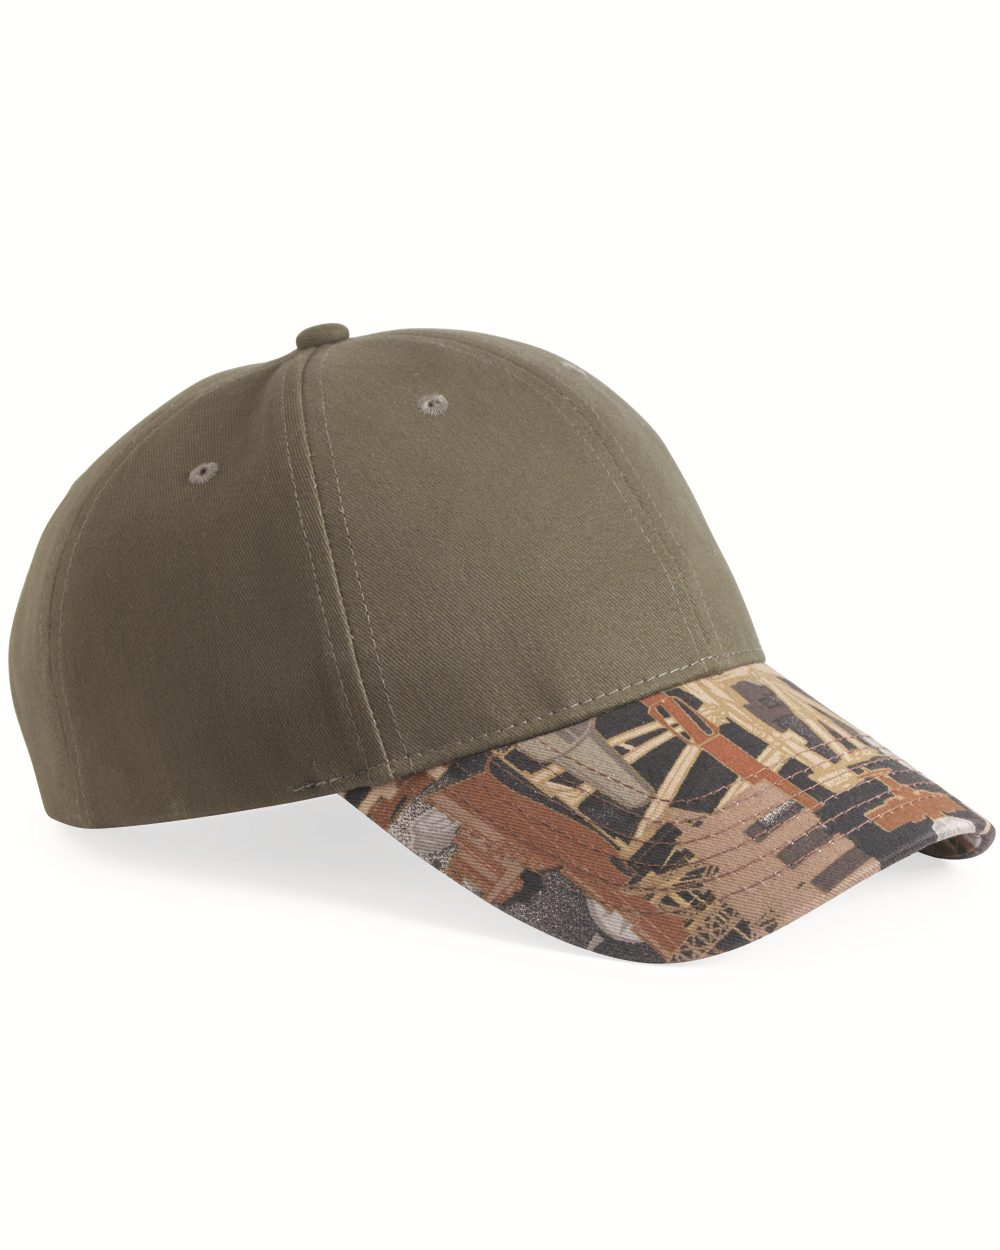 Kati OIL25 - Solid Crown with Oilfield Camo Cap